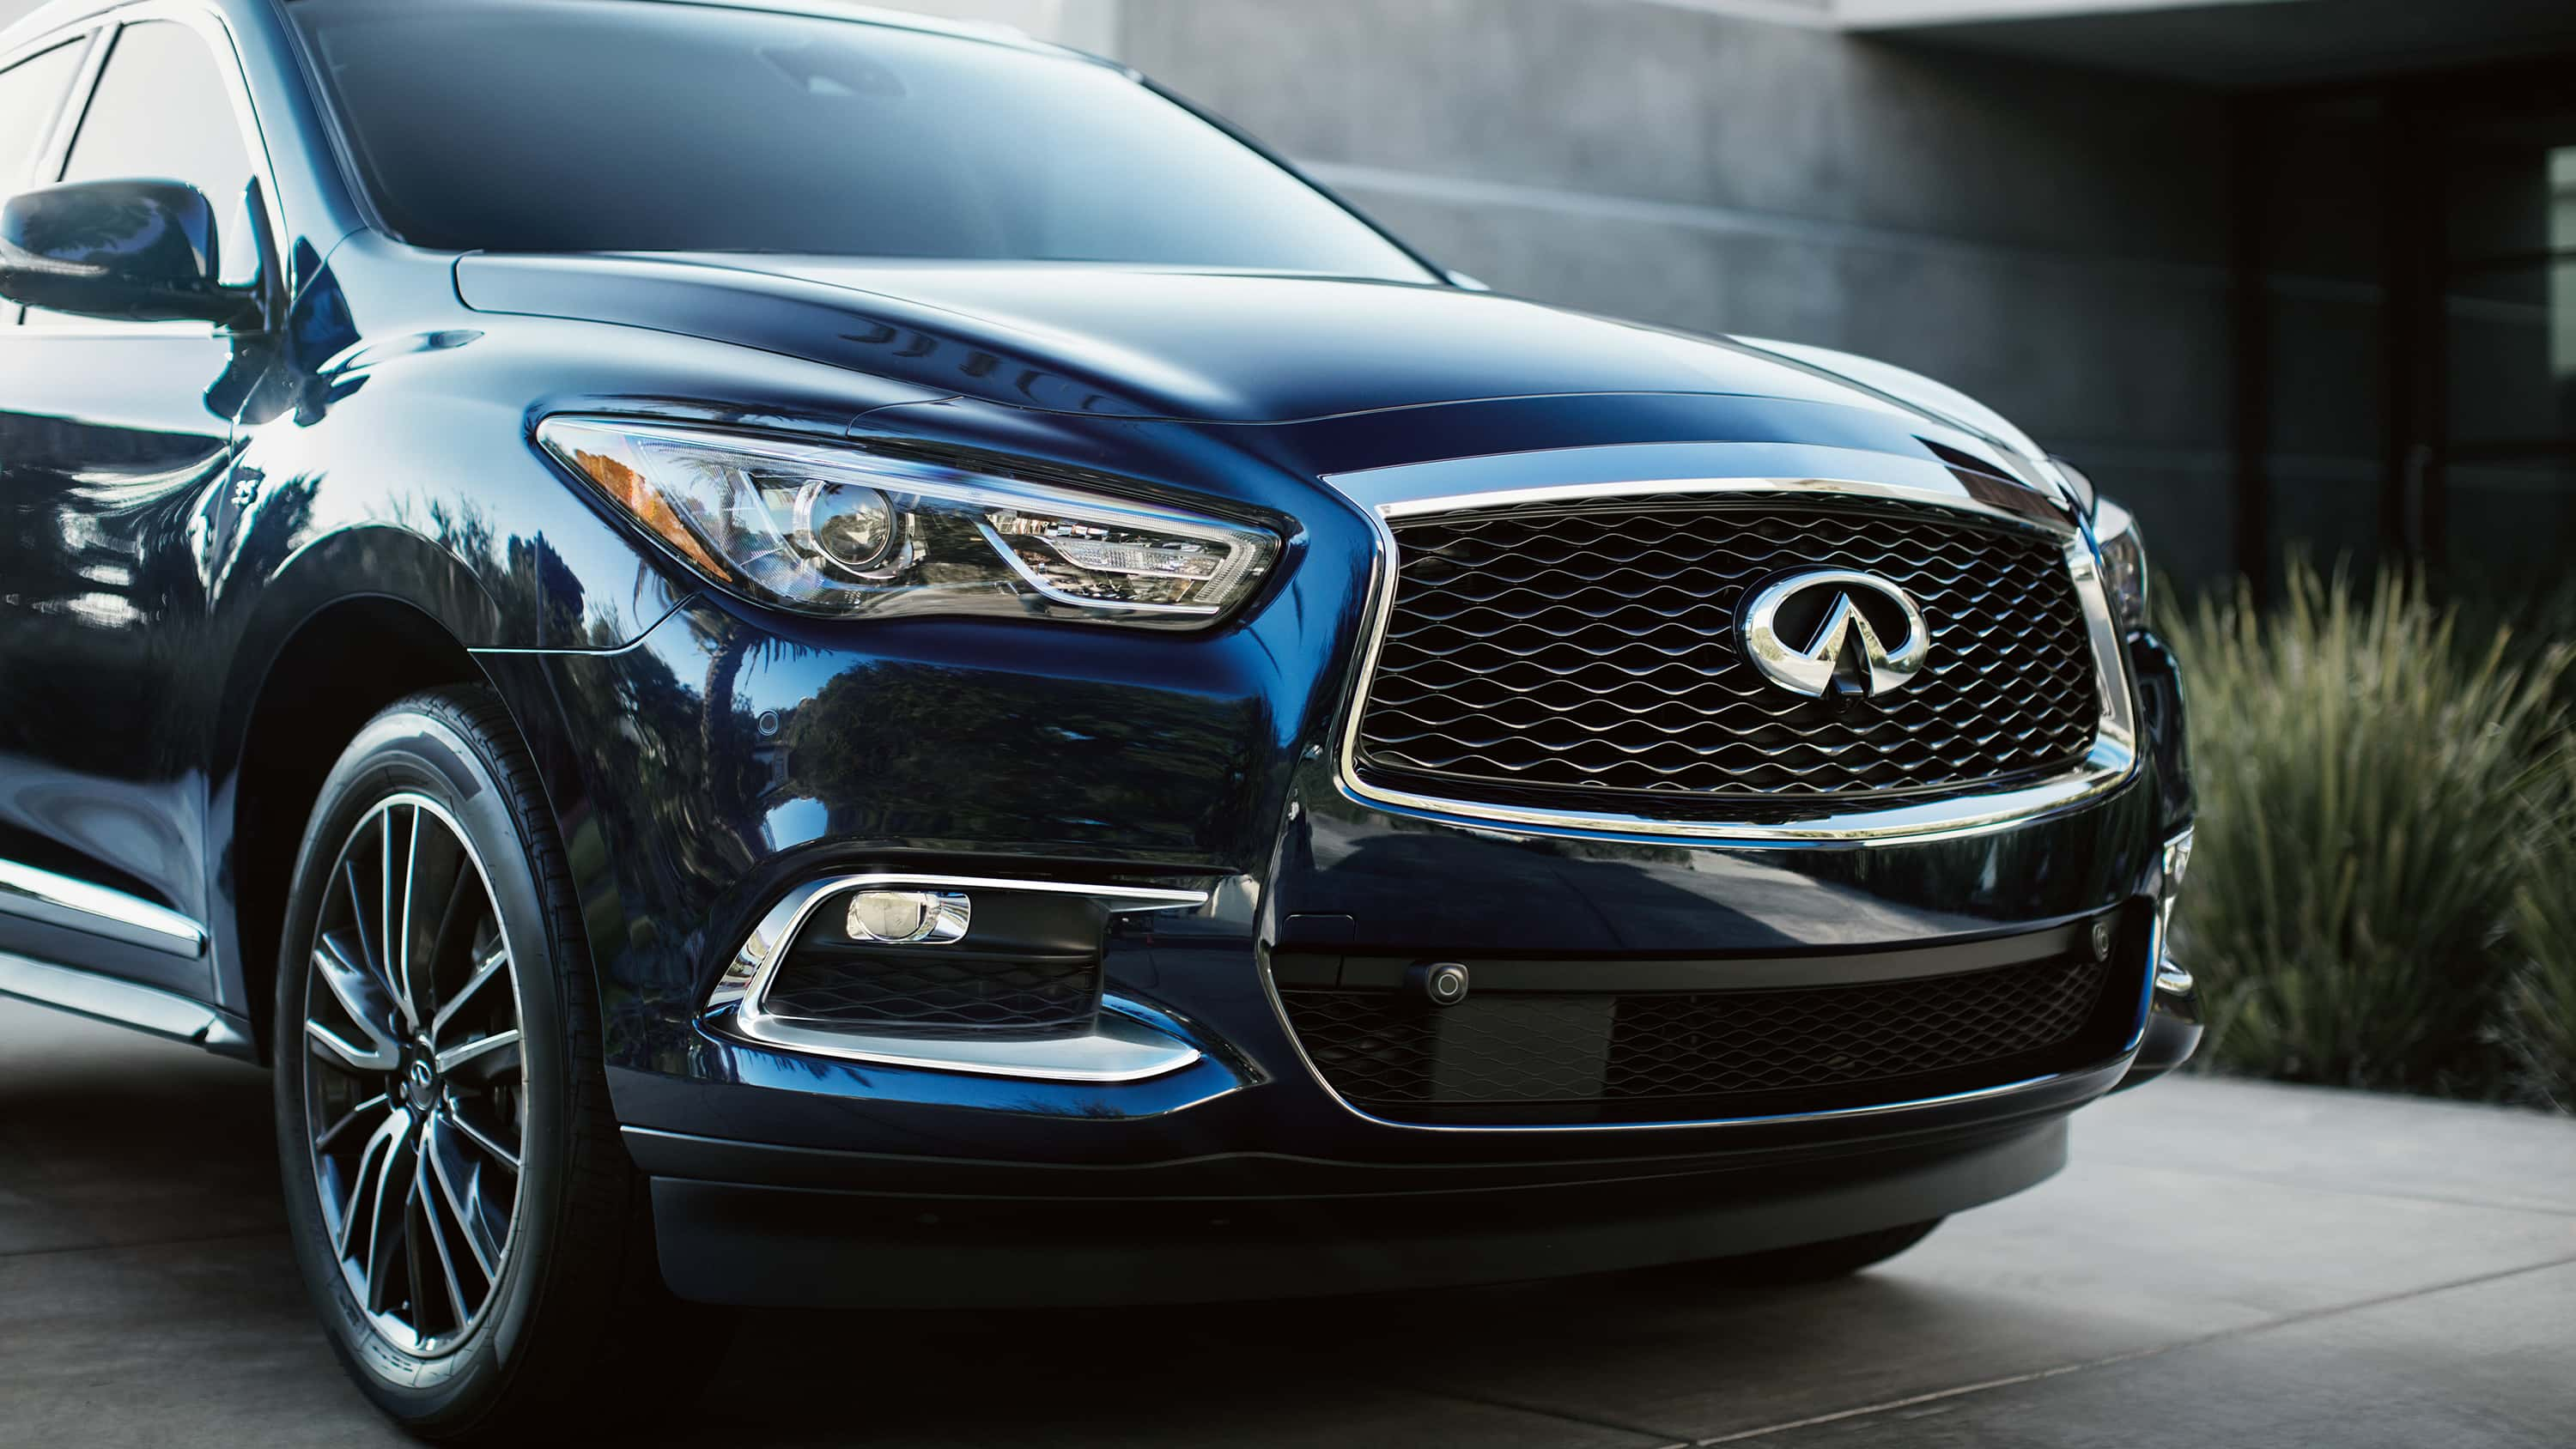 48 Gallery of Best Infiniti 2019 Qx60 First Drive Engine for Best Infiniti 2019 Qx60 First Drive